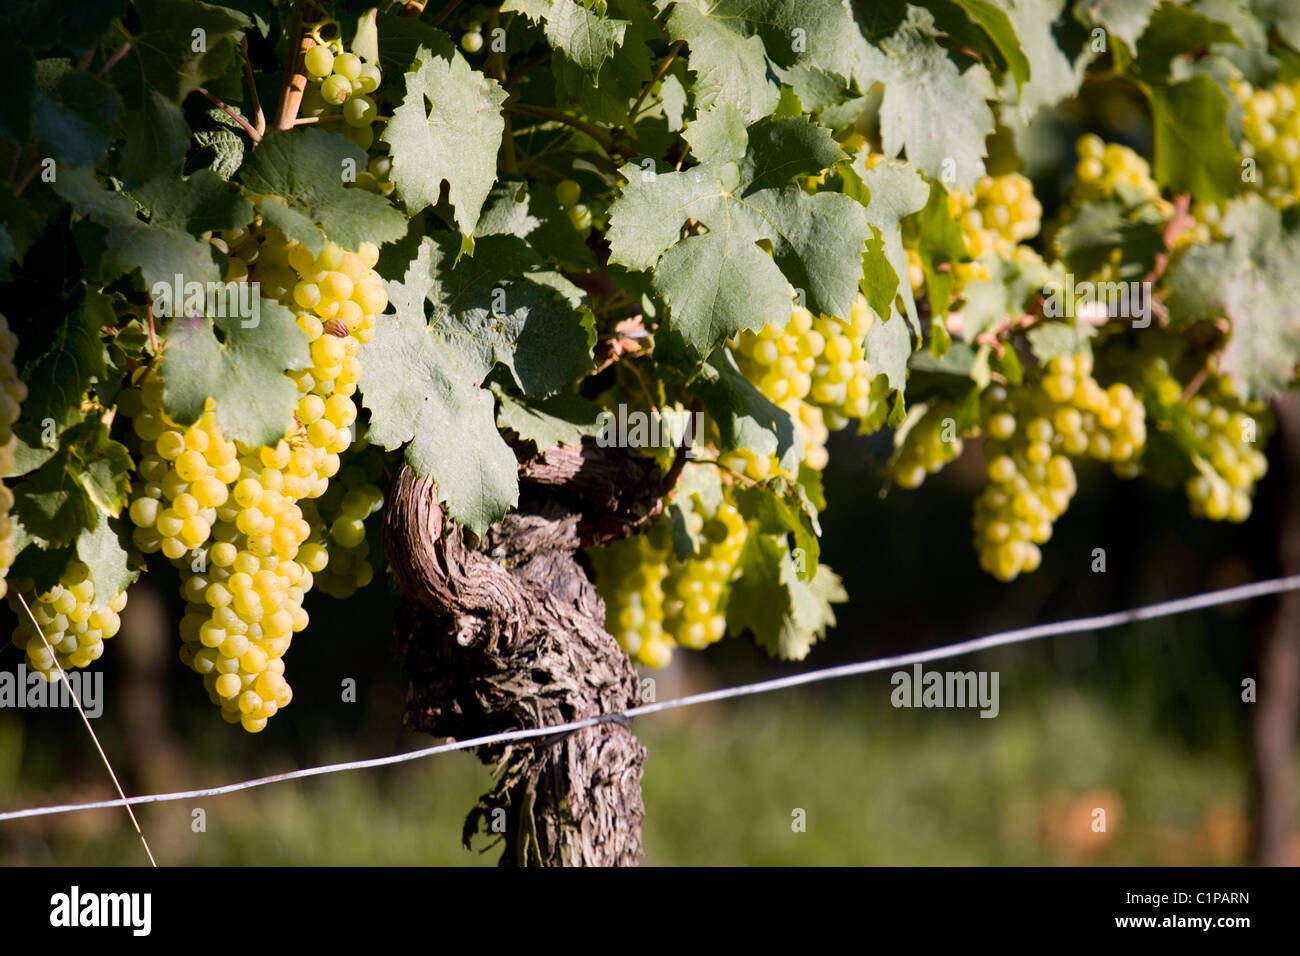 Germany, bunches of grapes on vine - Stock Image